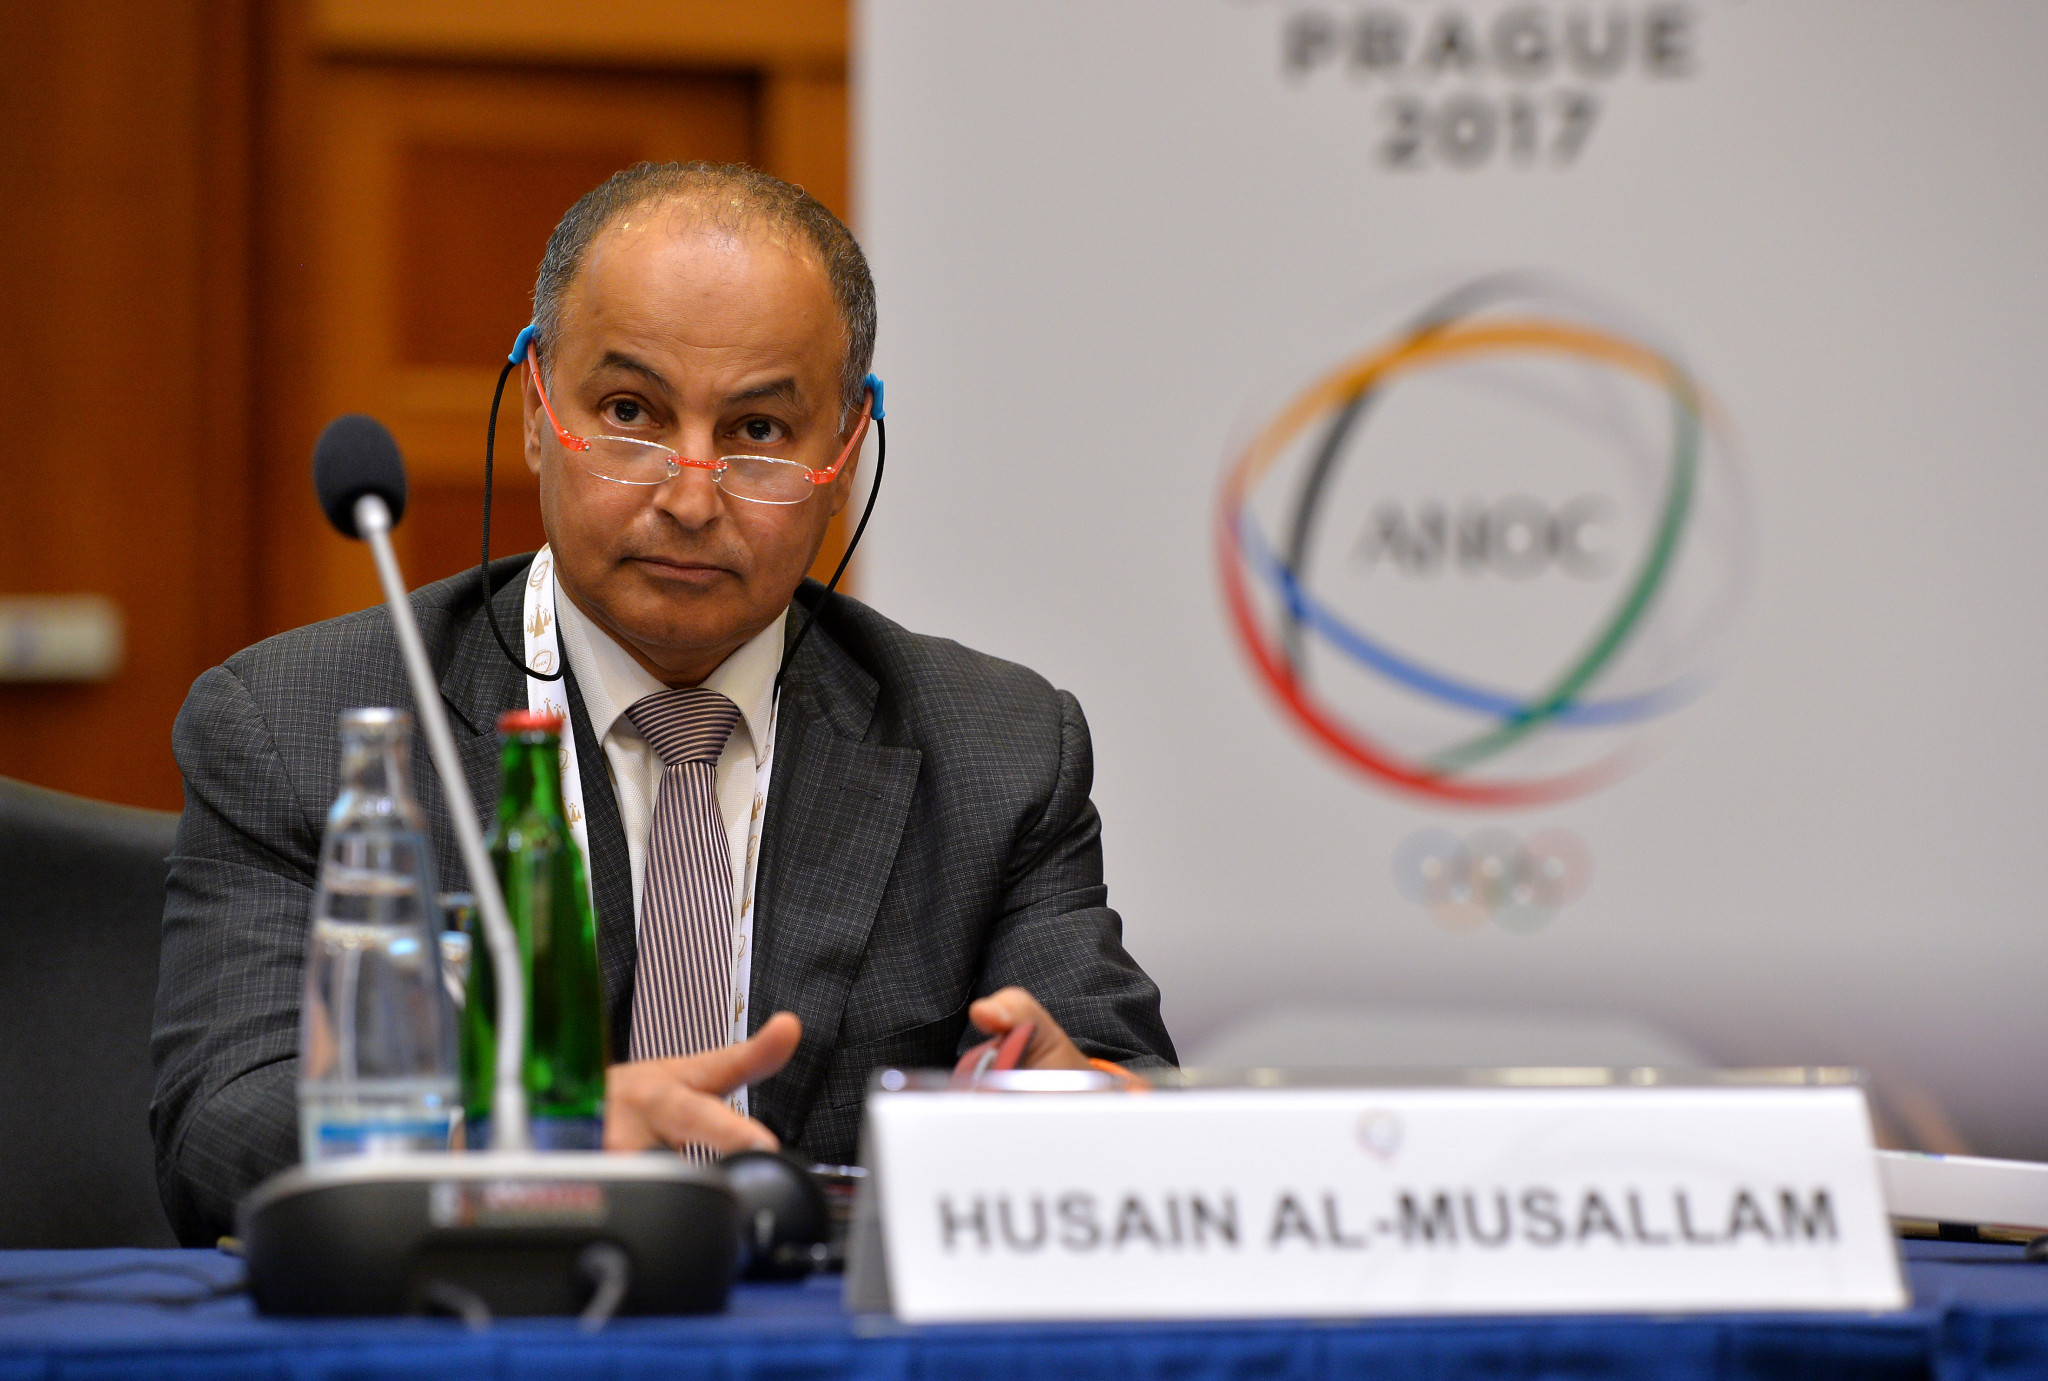 Al-Musallam set to be elected unopposed as FINA President at General Congress